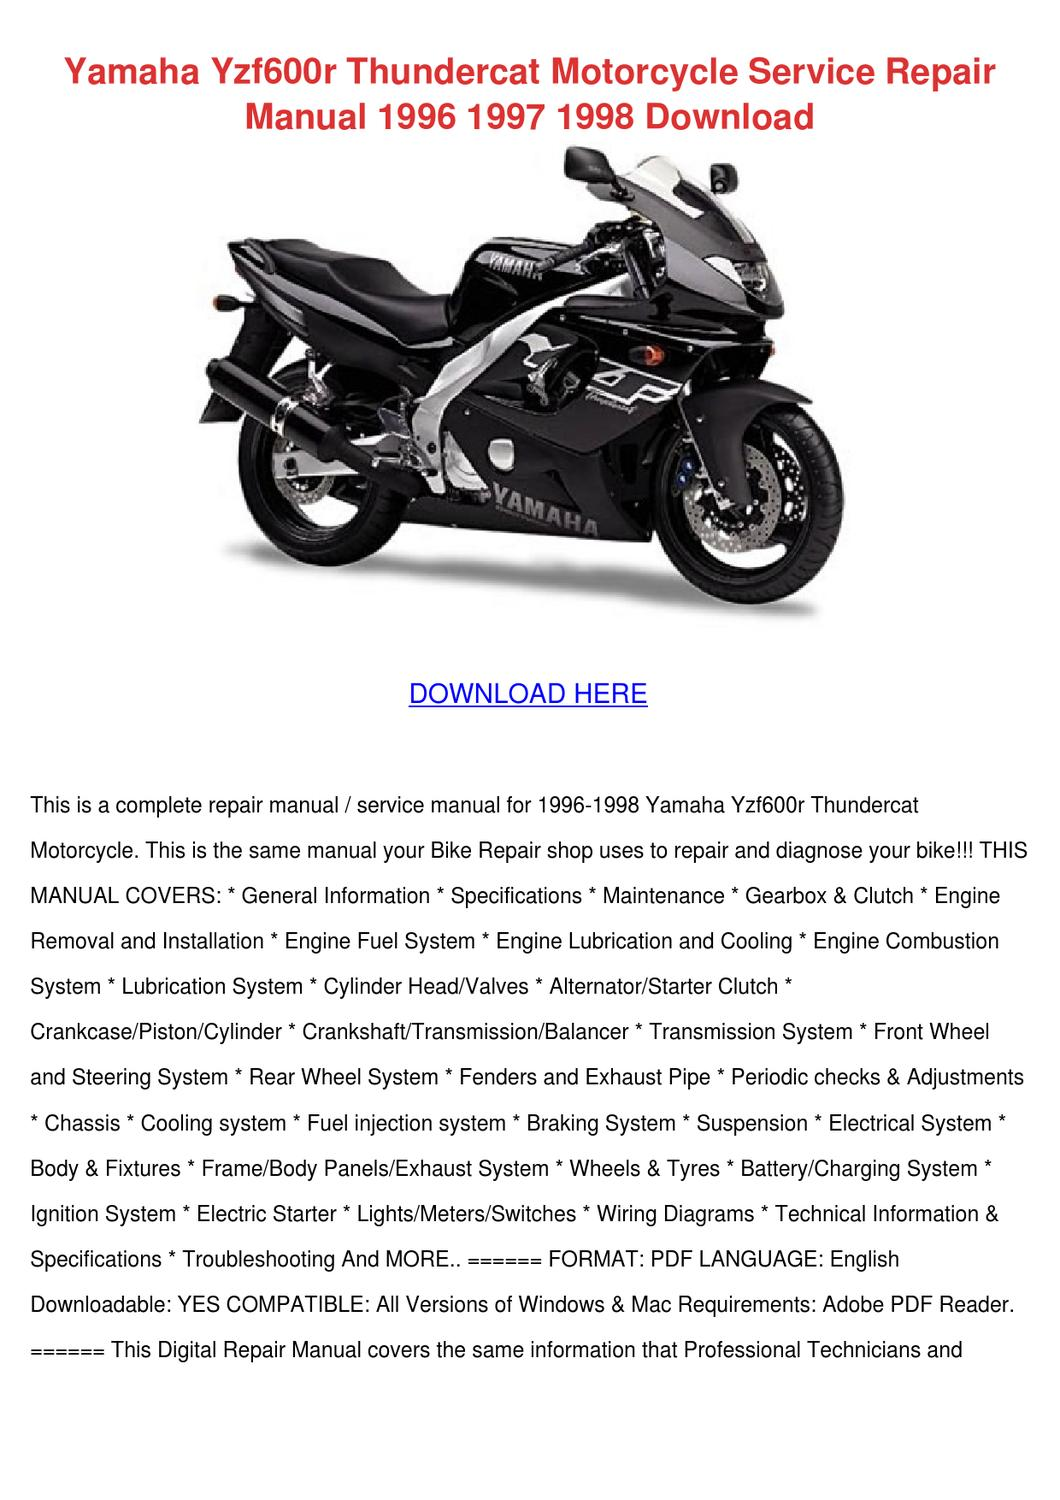 Yamaha Yzf600r Thundercat Motorcycle Service by Margorie ... on